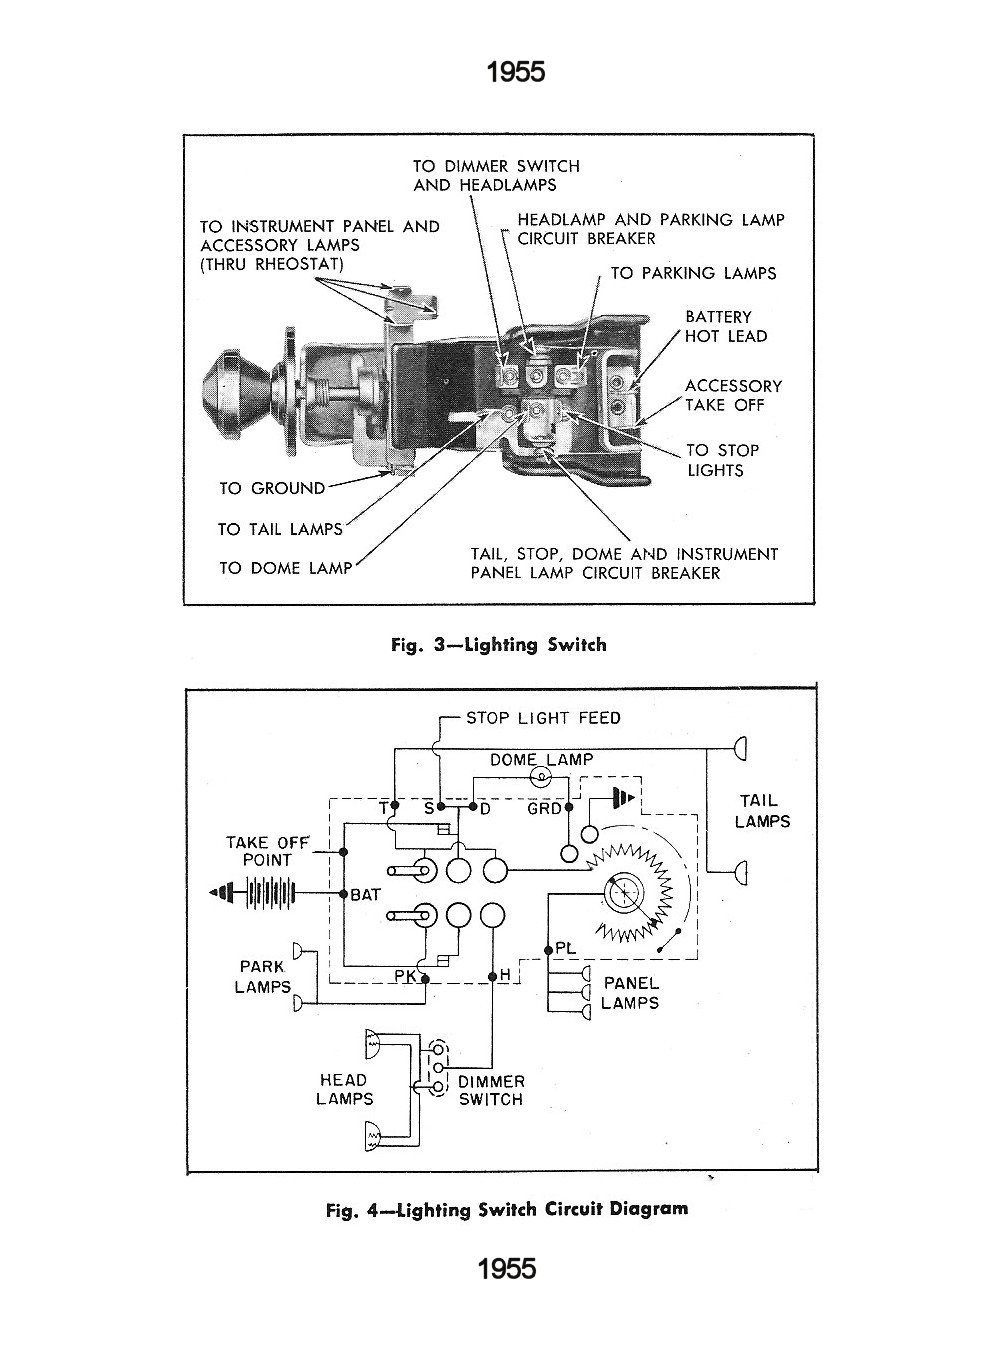 Fabulous 1984 Chevy C10 Fuse Box Diagram Basic Electronics Wiring Diagram Wiring 101 Akebretraxxcnl